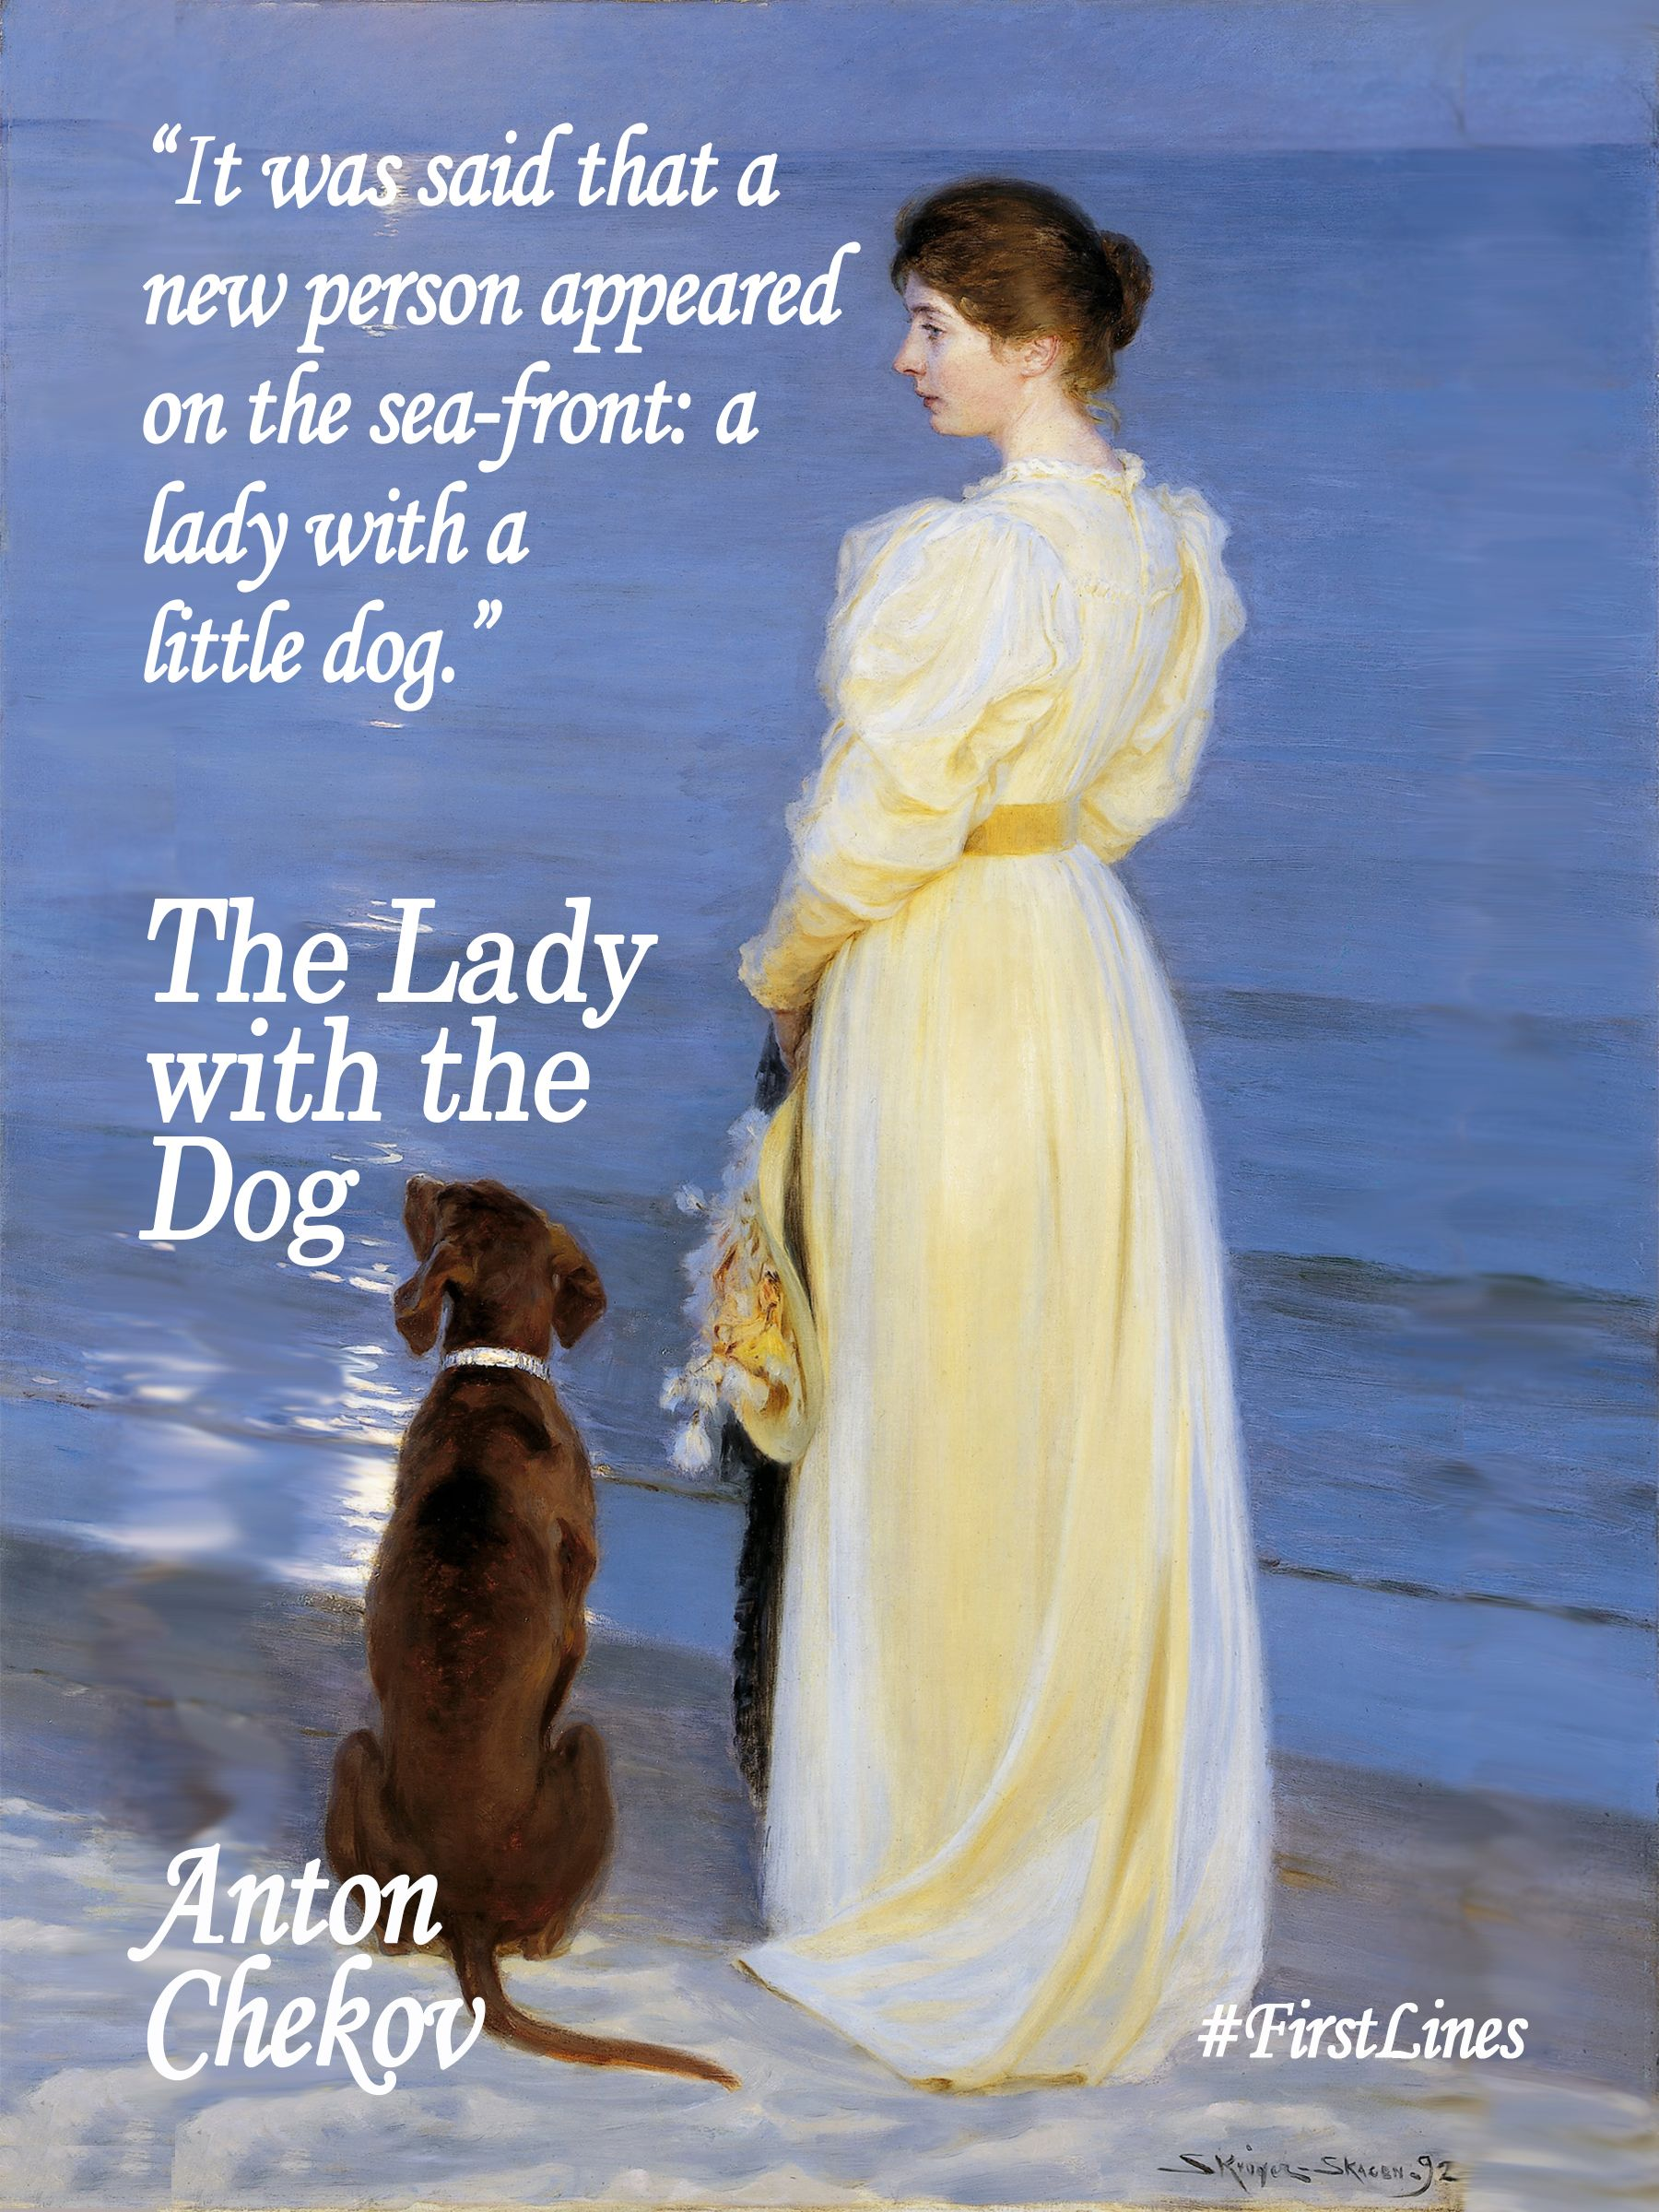 It was said that a new person appeared on the sea front a lady it was said that a new person appeared on the sea front a lady with a little dog anton chekhov the lady with the dog buycottarizona